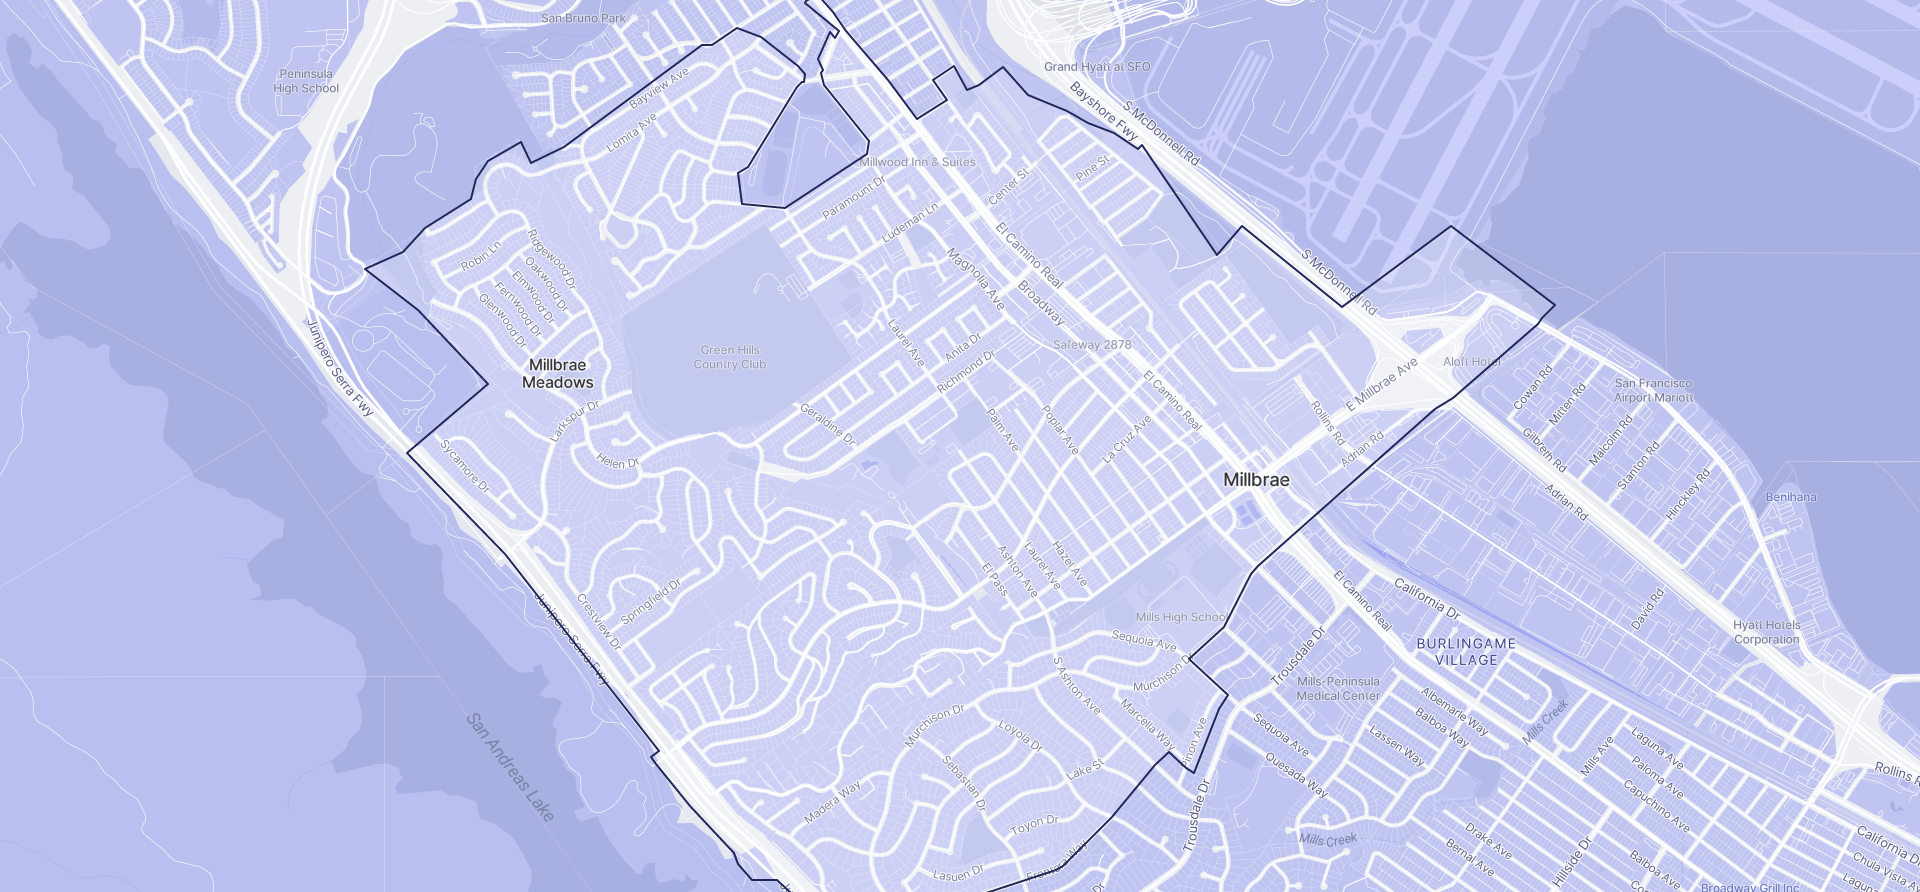 Image of Millbrae boundaries on a map.